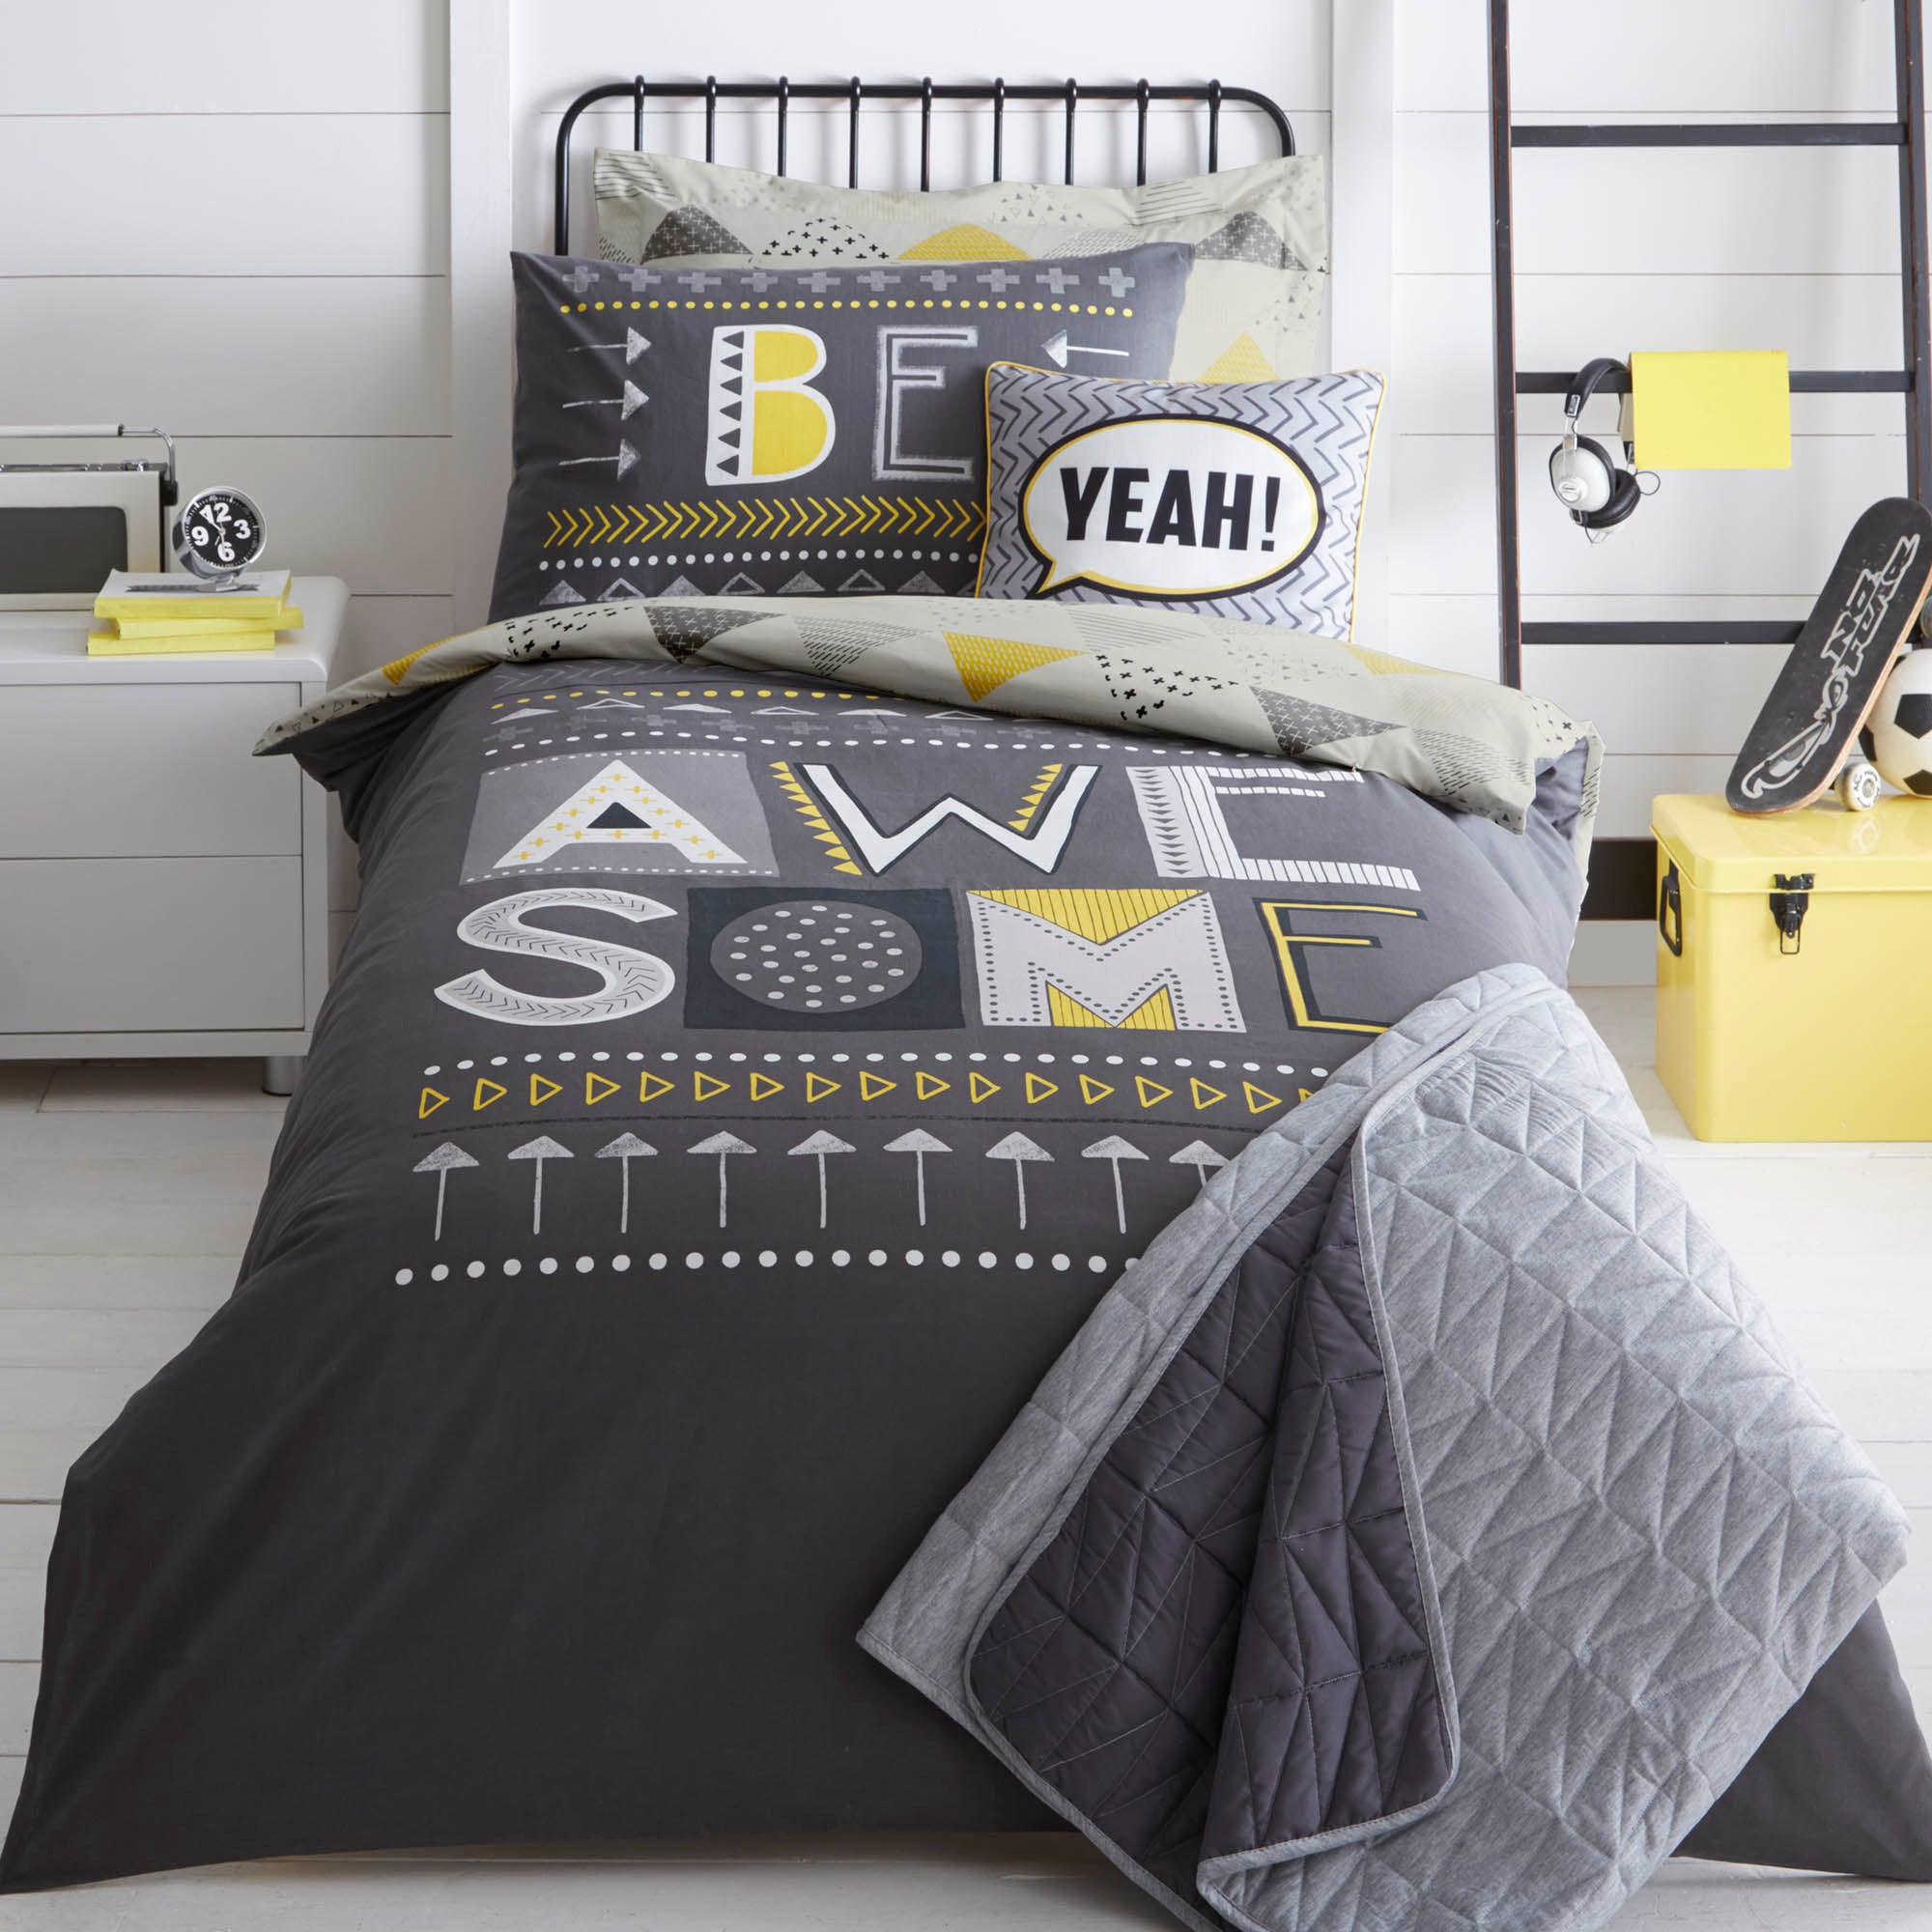 Be Awesome Bed Linen Collection